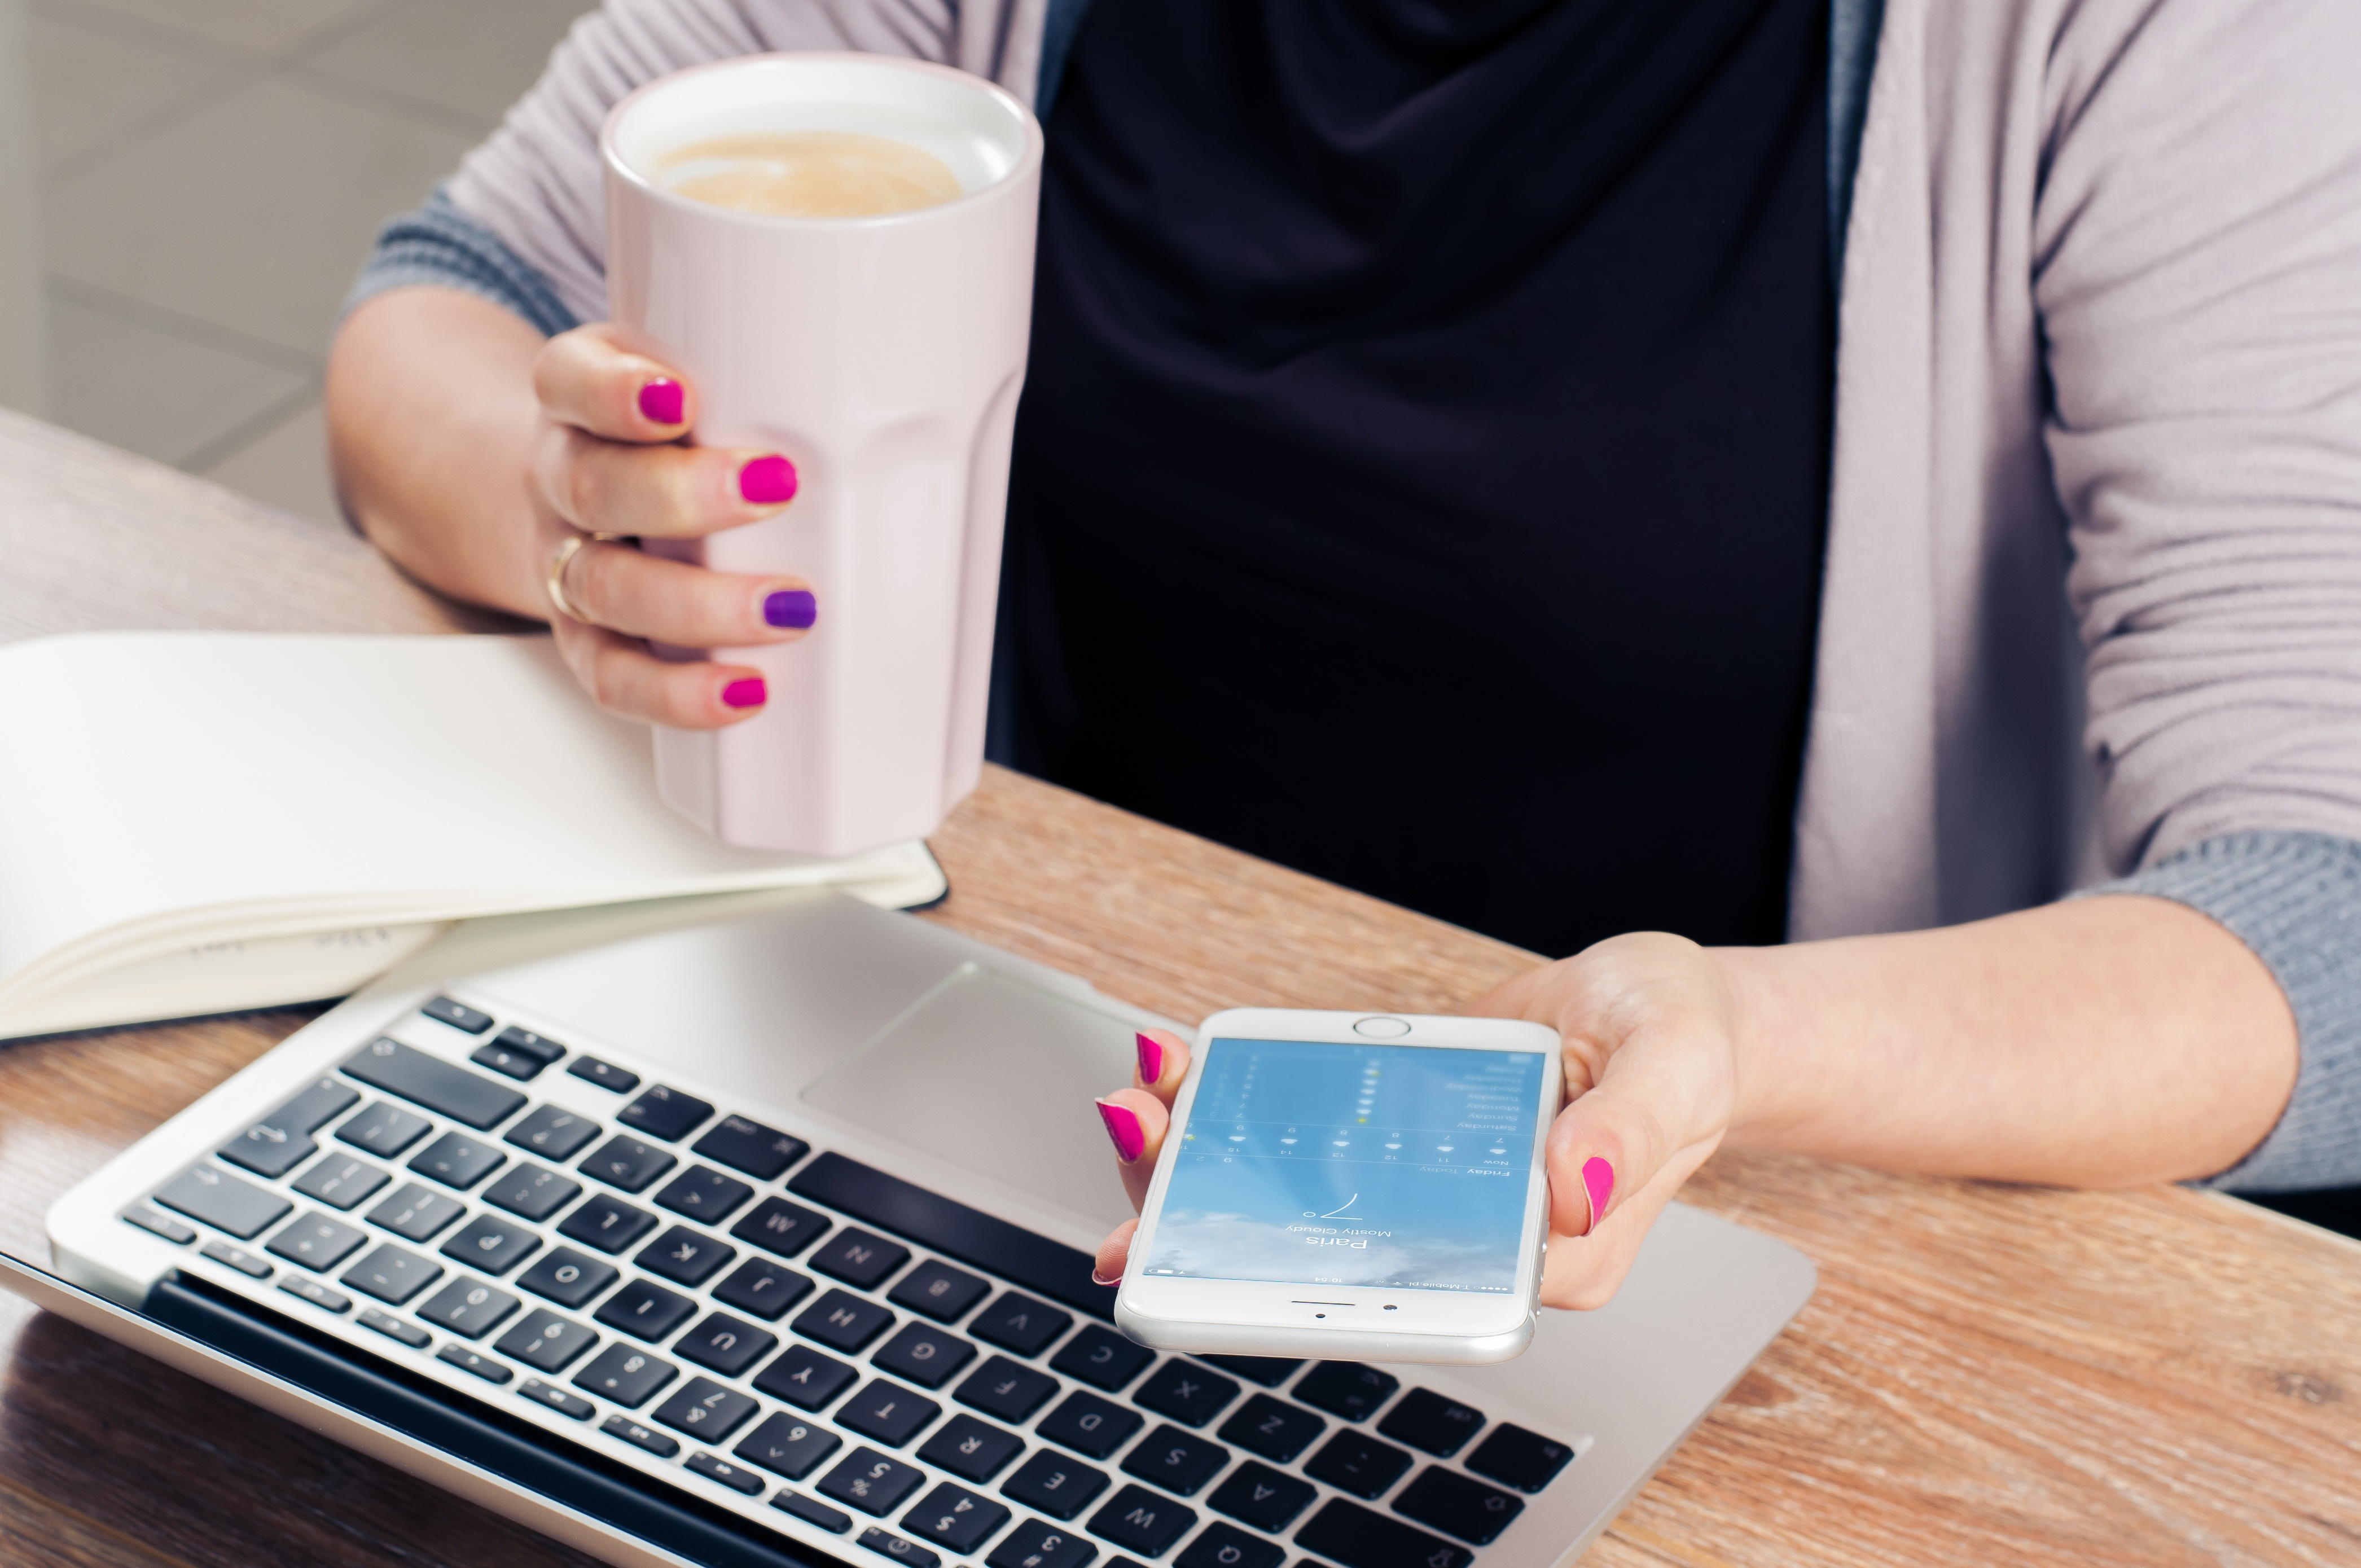 Girl using phone and drinking coffee